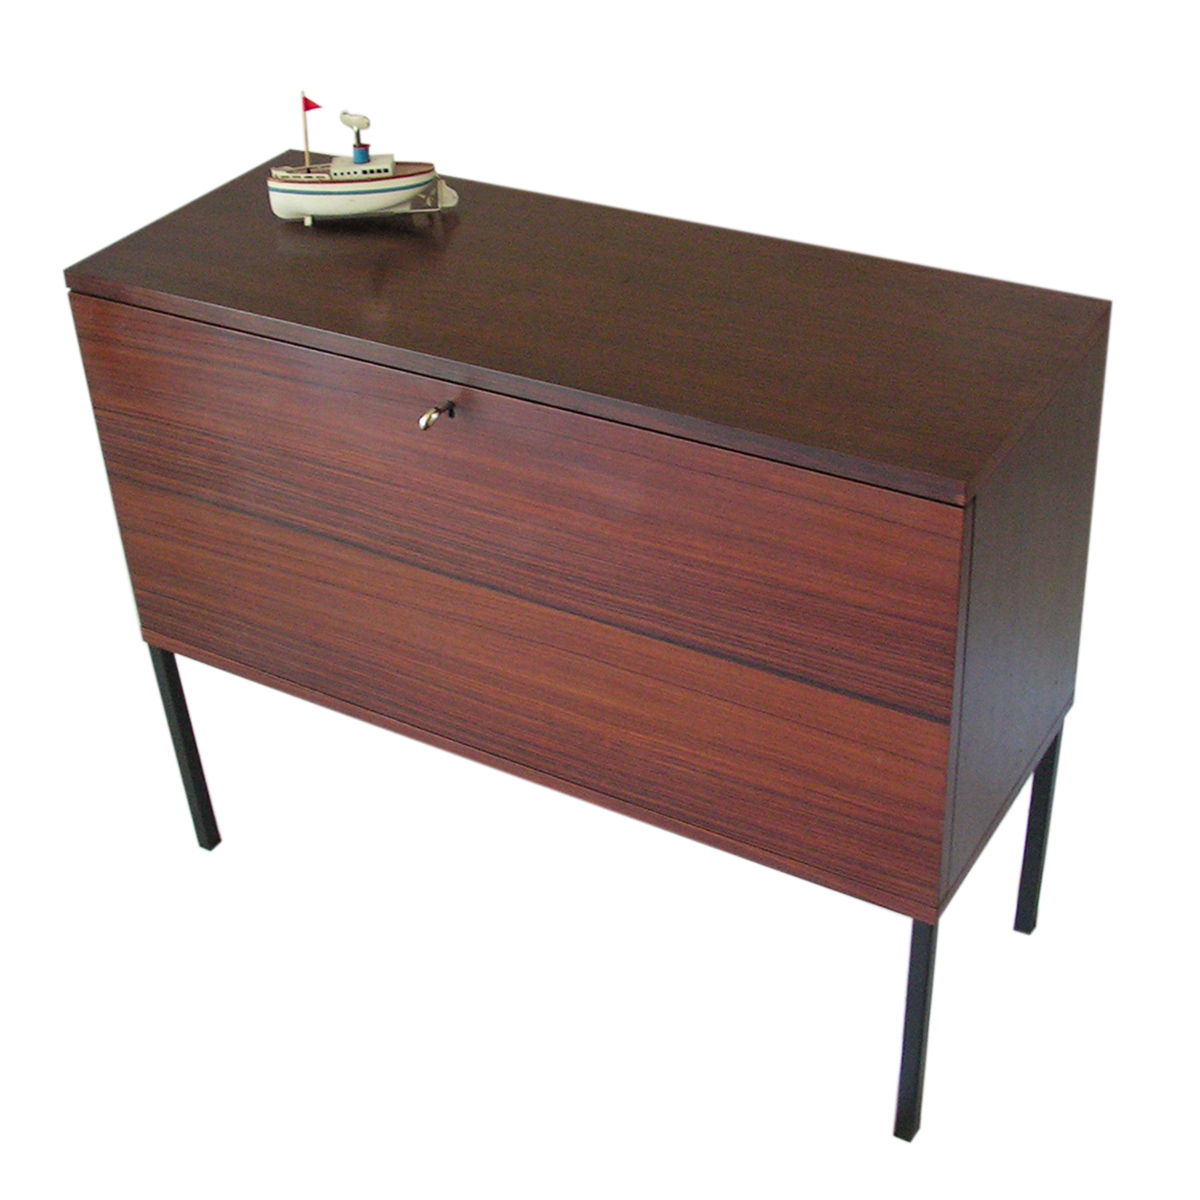 sideboard-cocktail-dry-bar-victoria-rosewood-swiss-design-baar